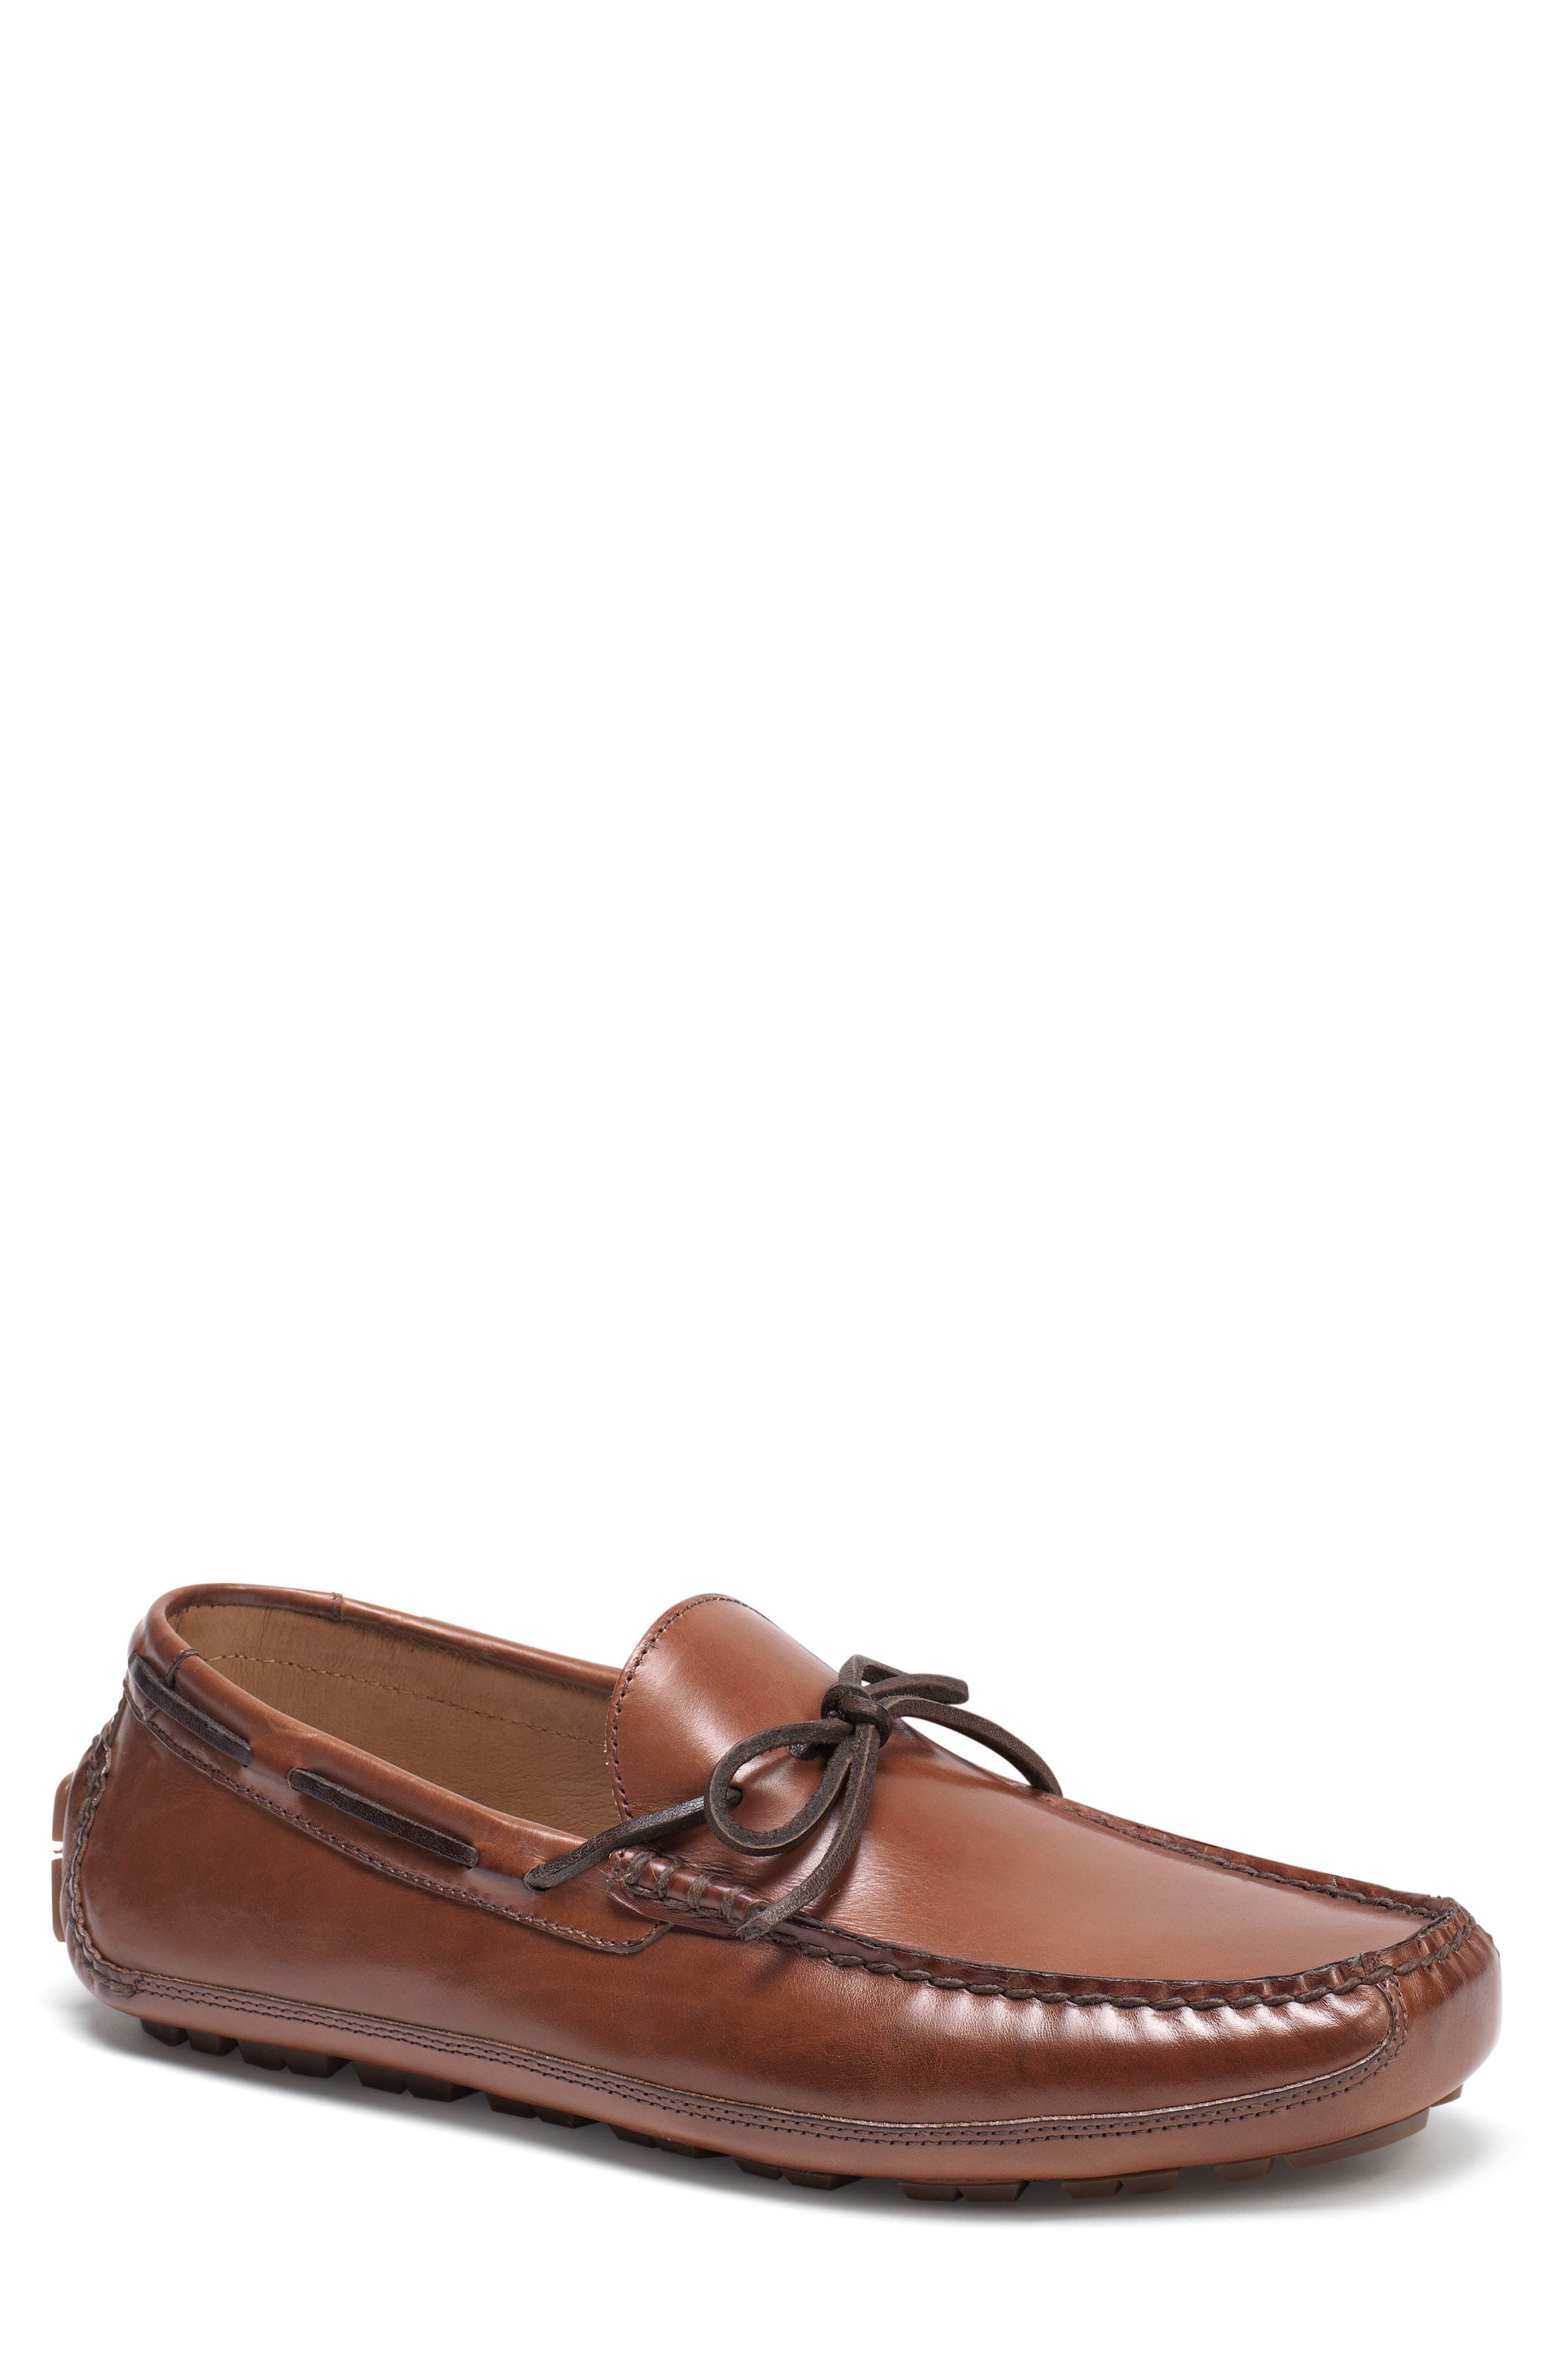 Rawhide lacing wraps the heel and ties at the front of a water-resistant moc-toe loafer set on a segmented driving sole that wraps neatly up the back. Style Name: Trask Dillion Driving Loafer (Men). Style Number: 5570448 1. Available in stores.